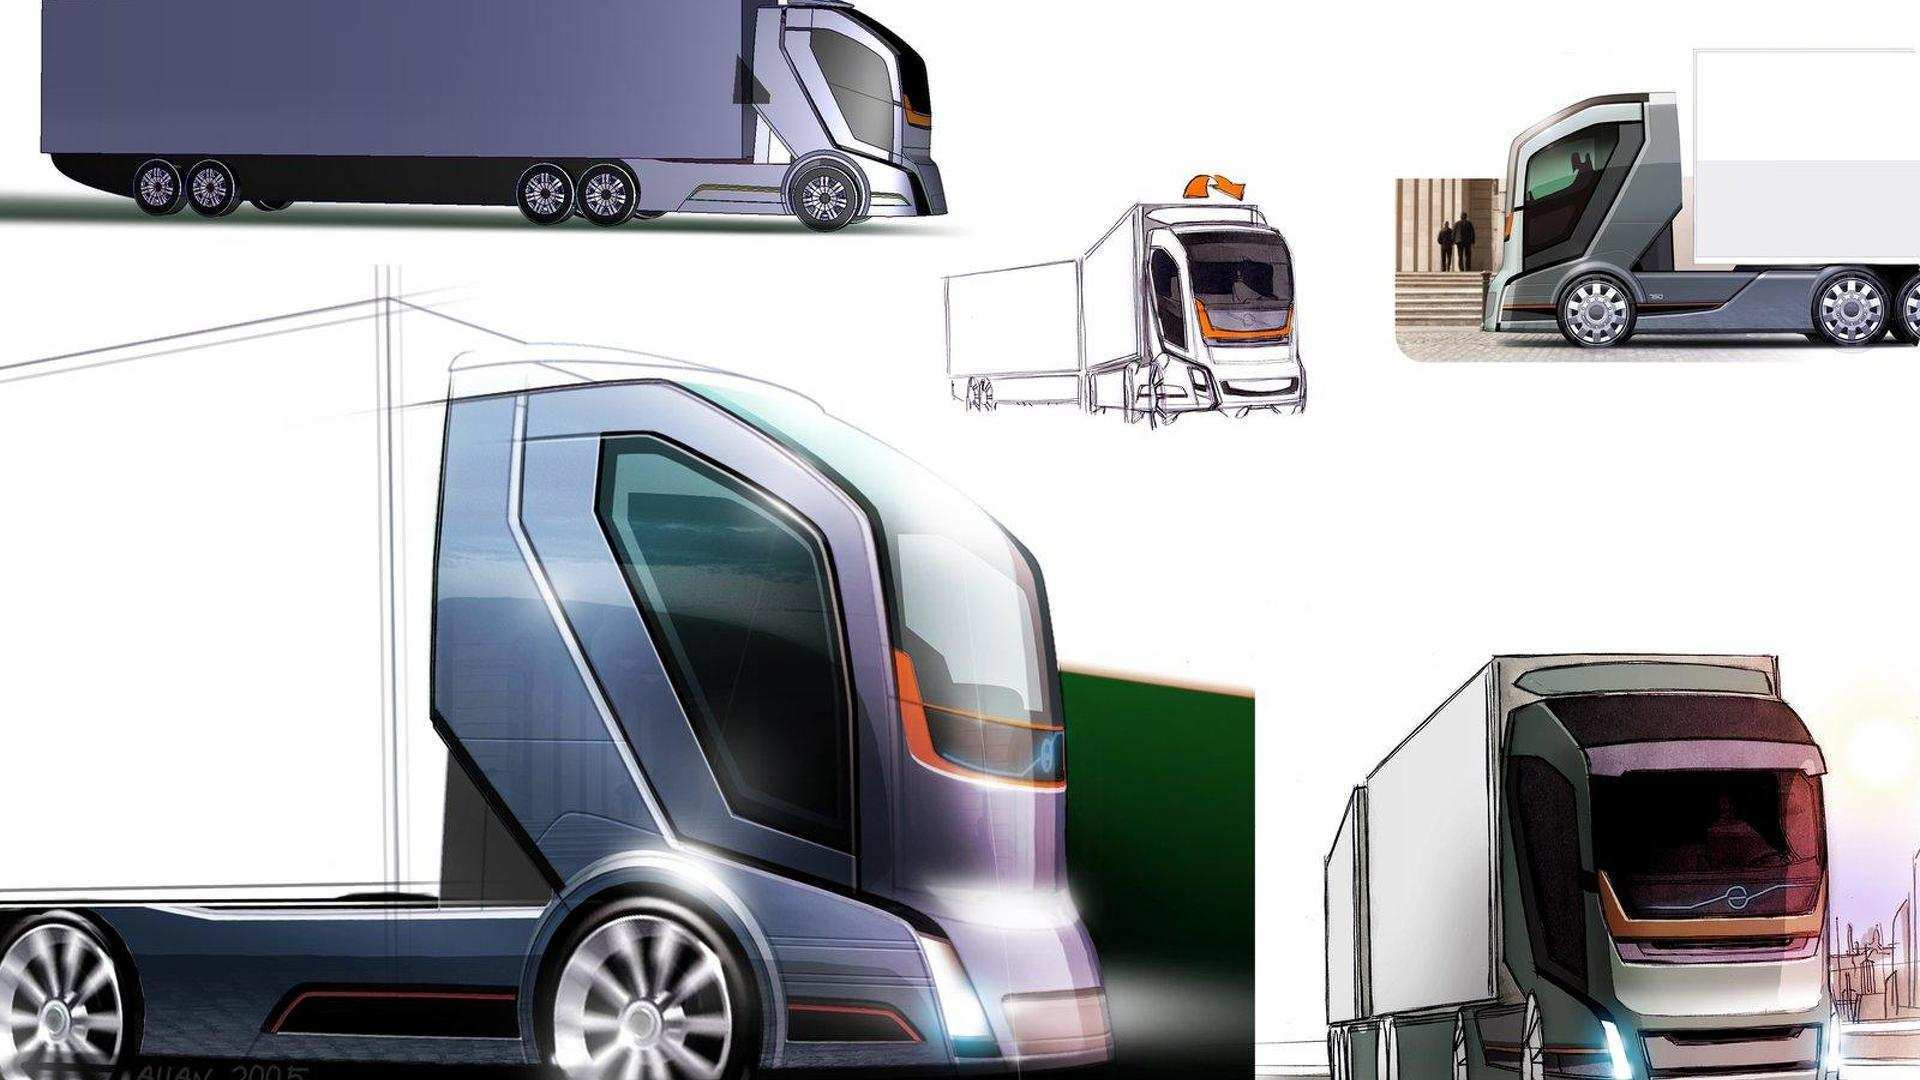 21 Concept of New Volvo Truck 2020 Release Date by New Volvo Truck 2020